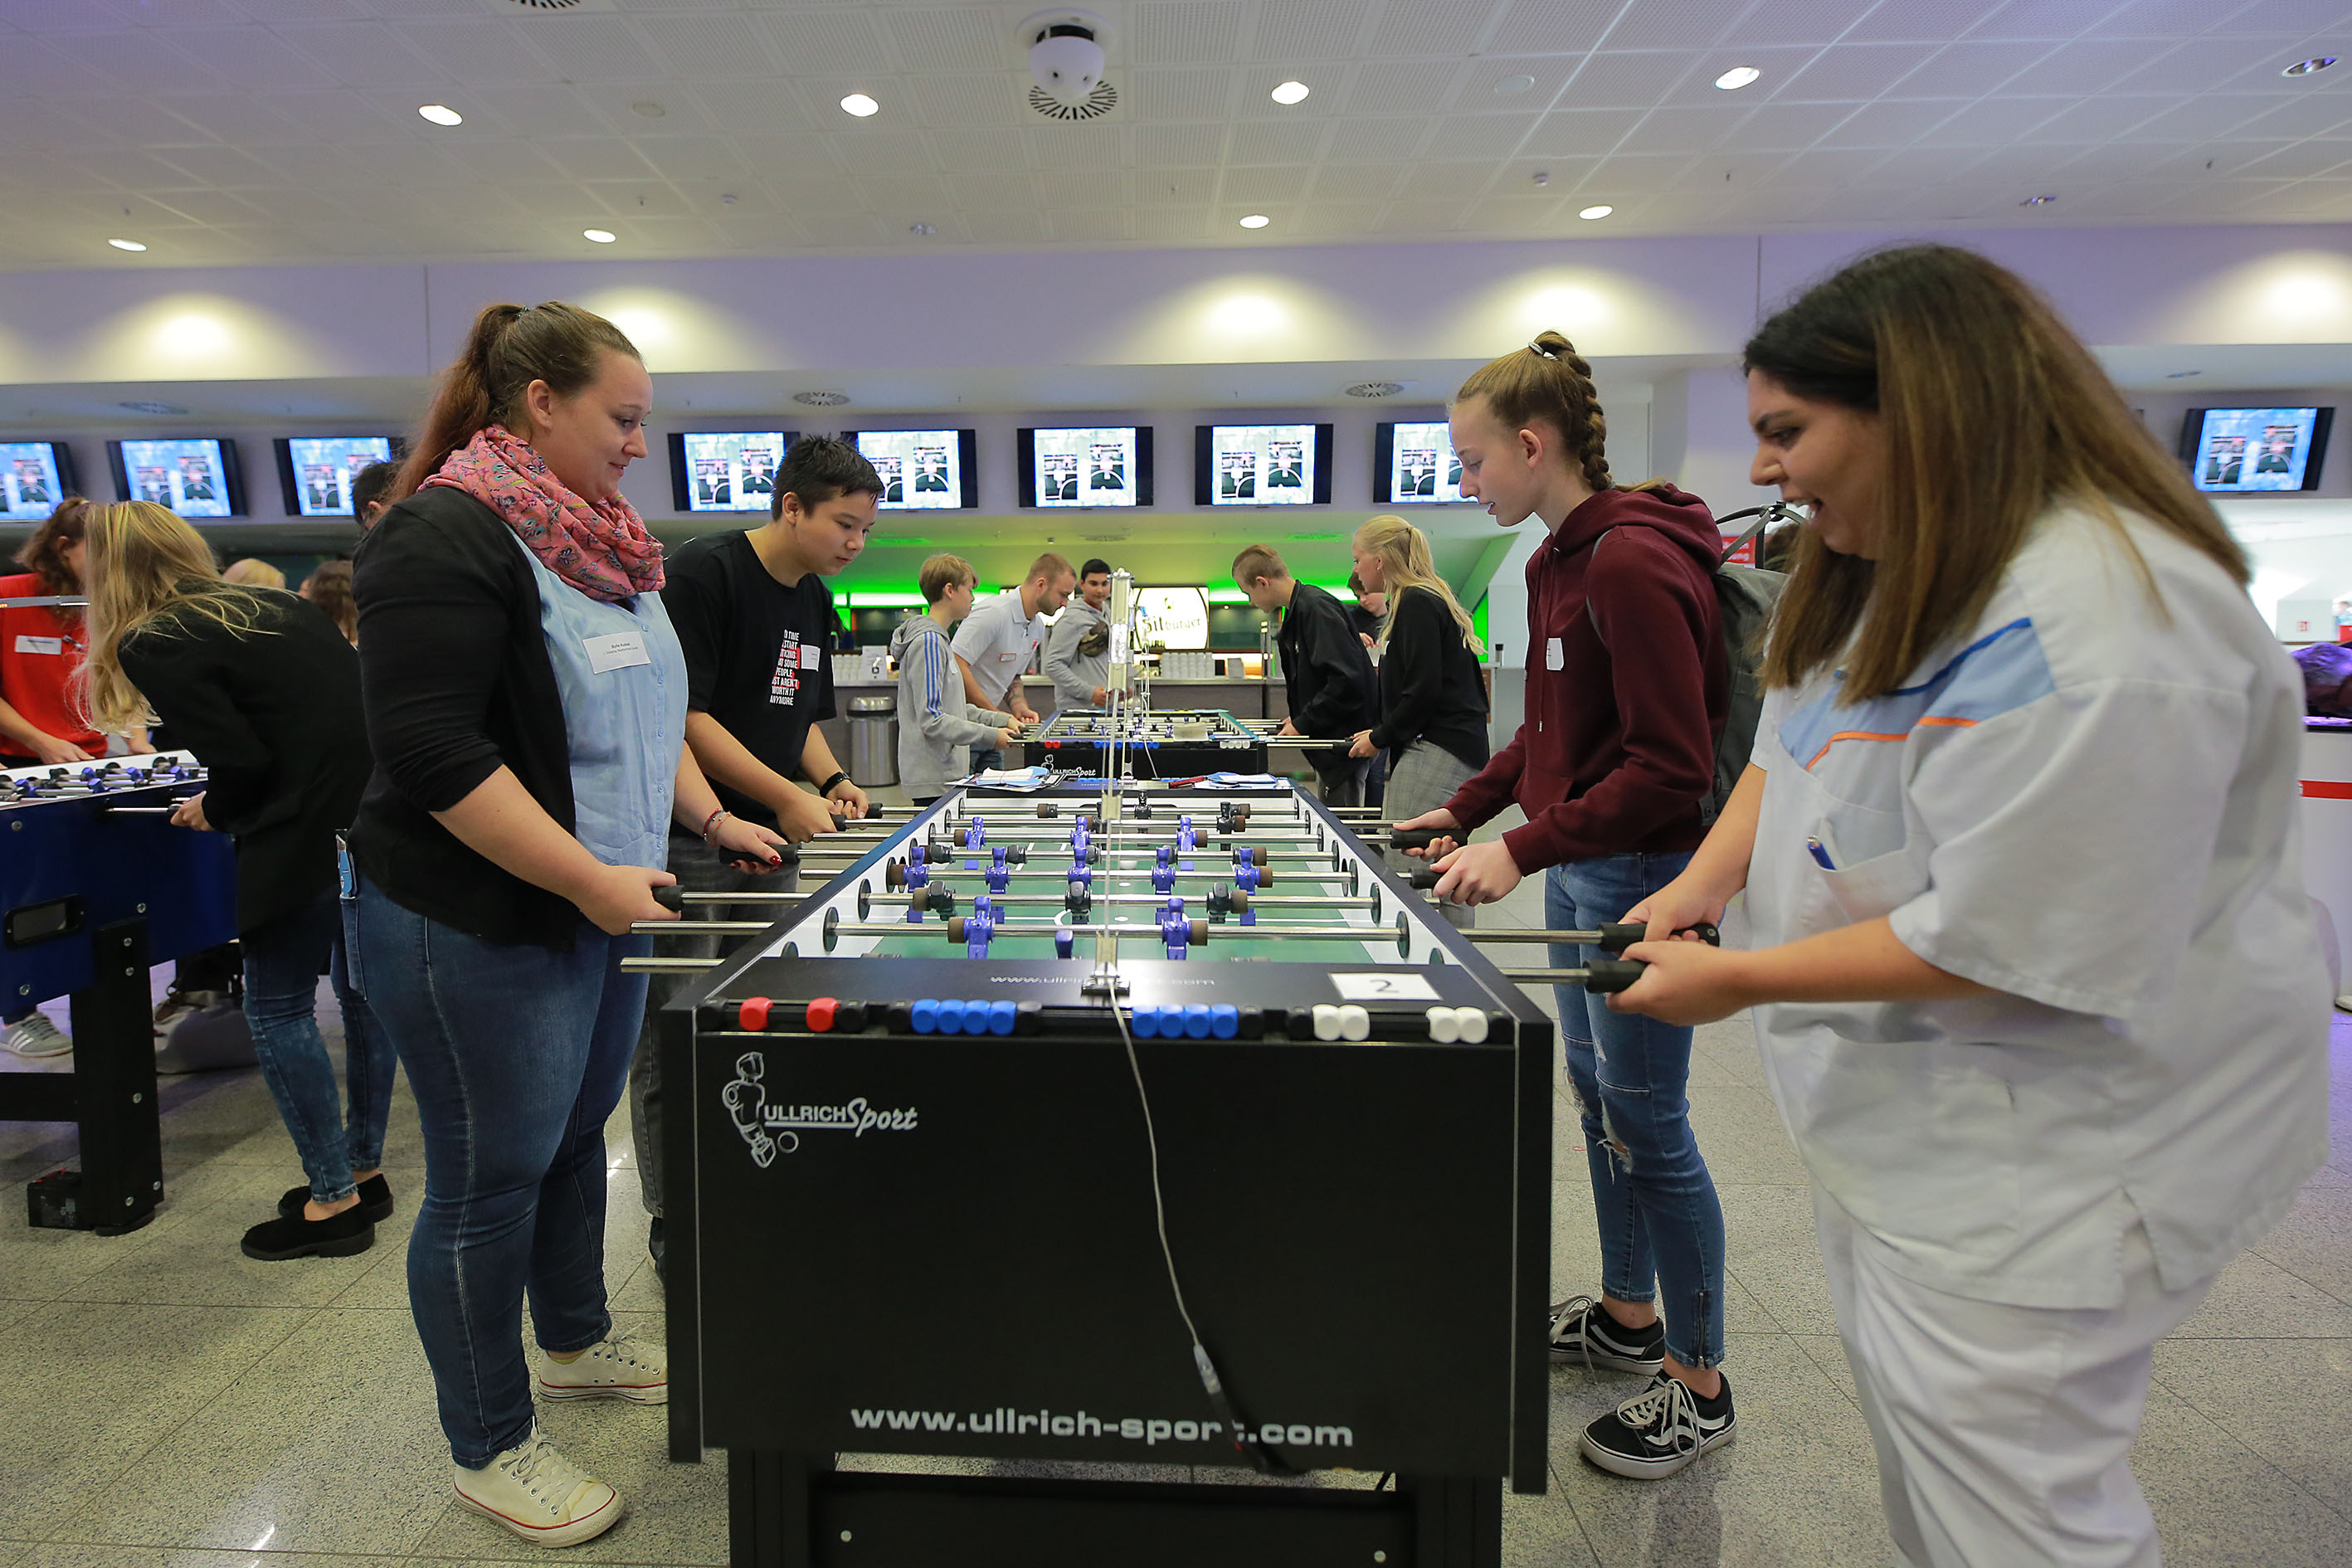 Business Lounge Borussia Park, Karriere-Kick, MG connect, WFMG